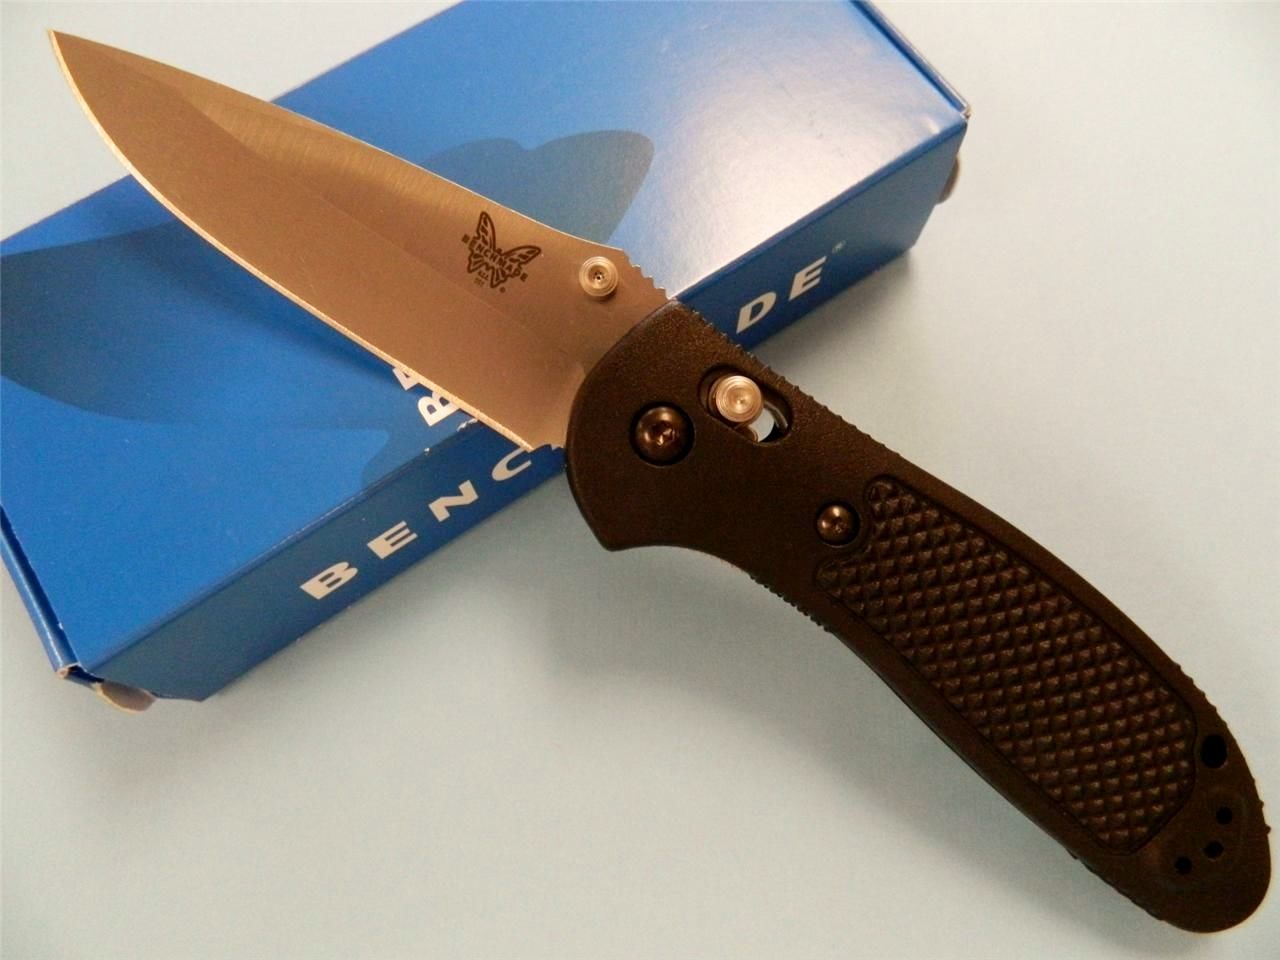 Benchmade 551 MDP Griptilian Axis Lock Knife/Thumb Stud/Open View